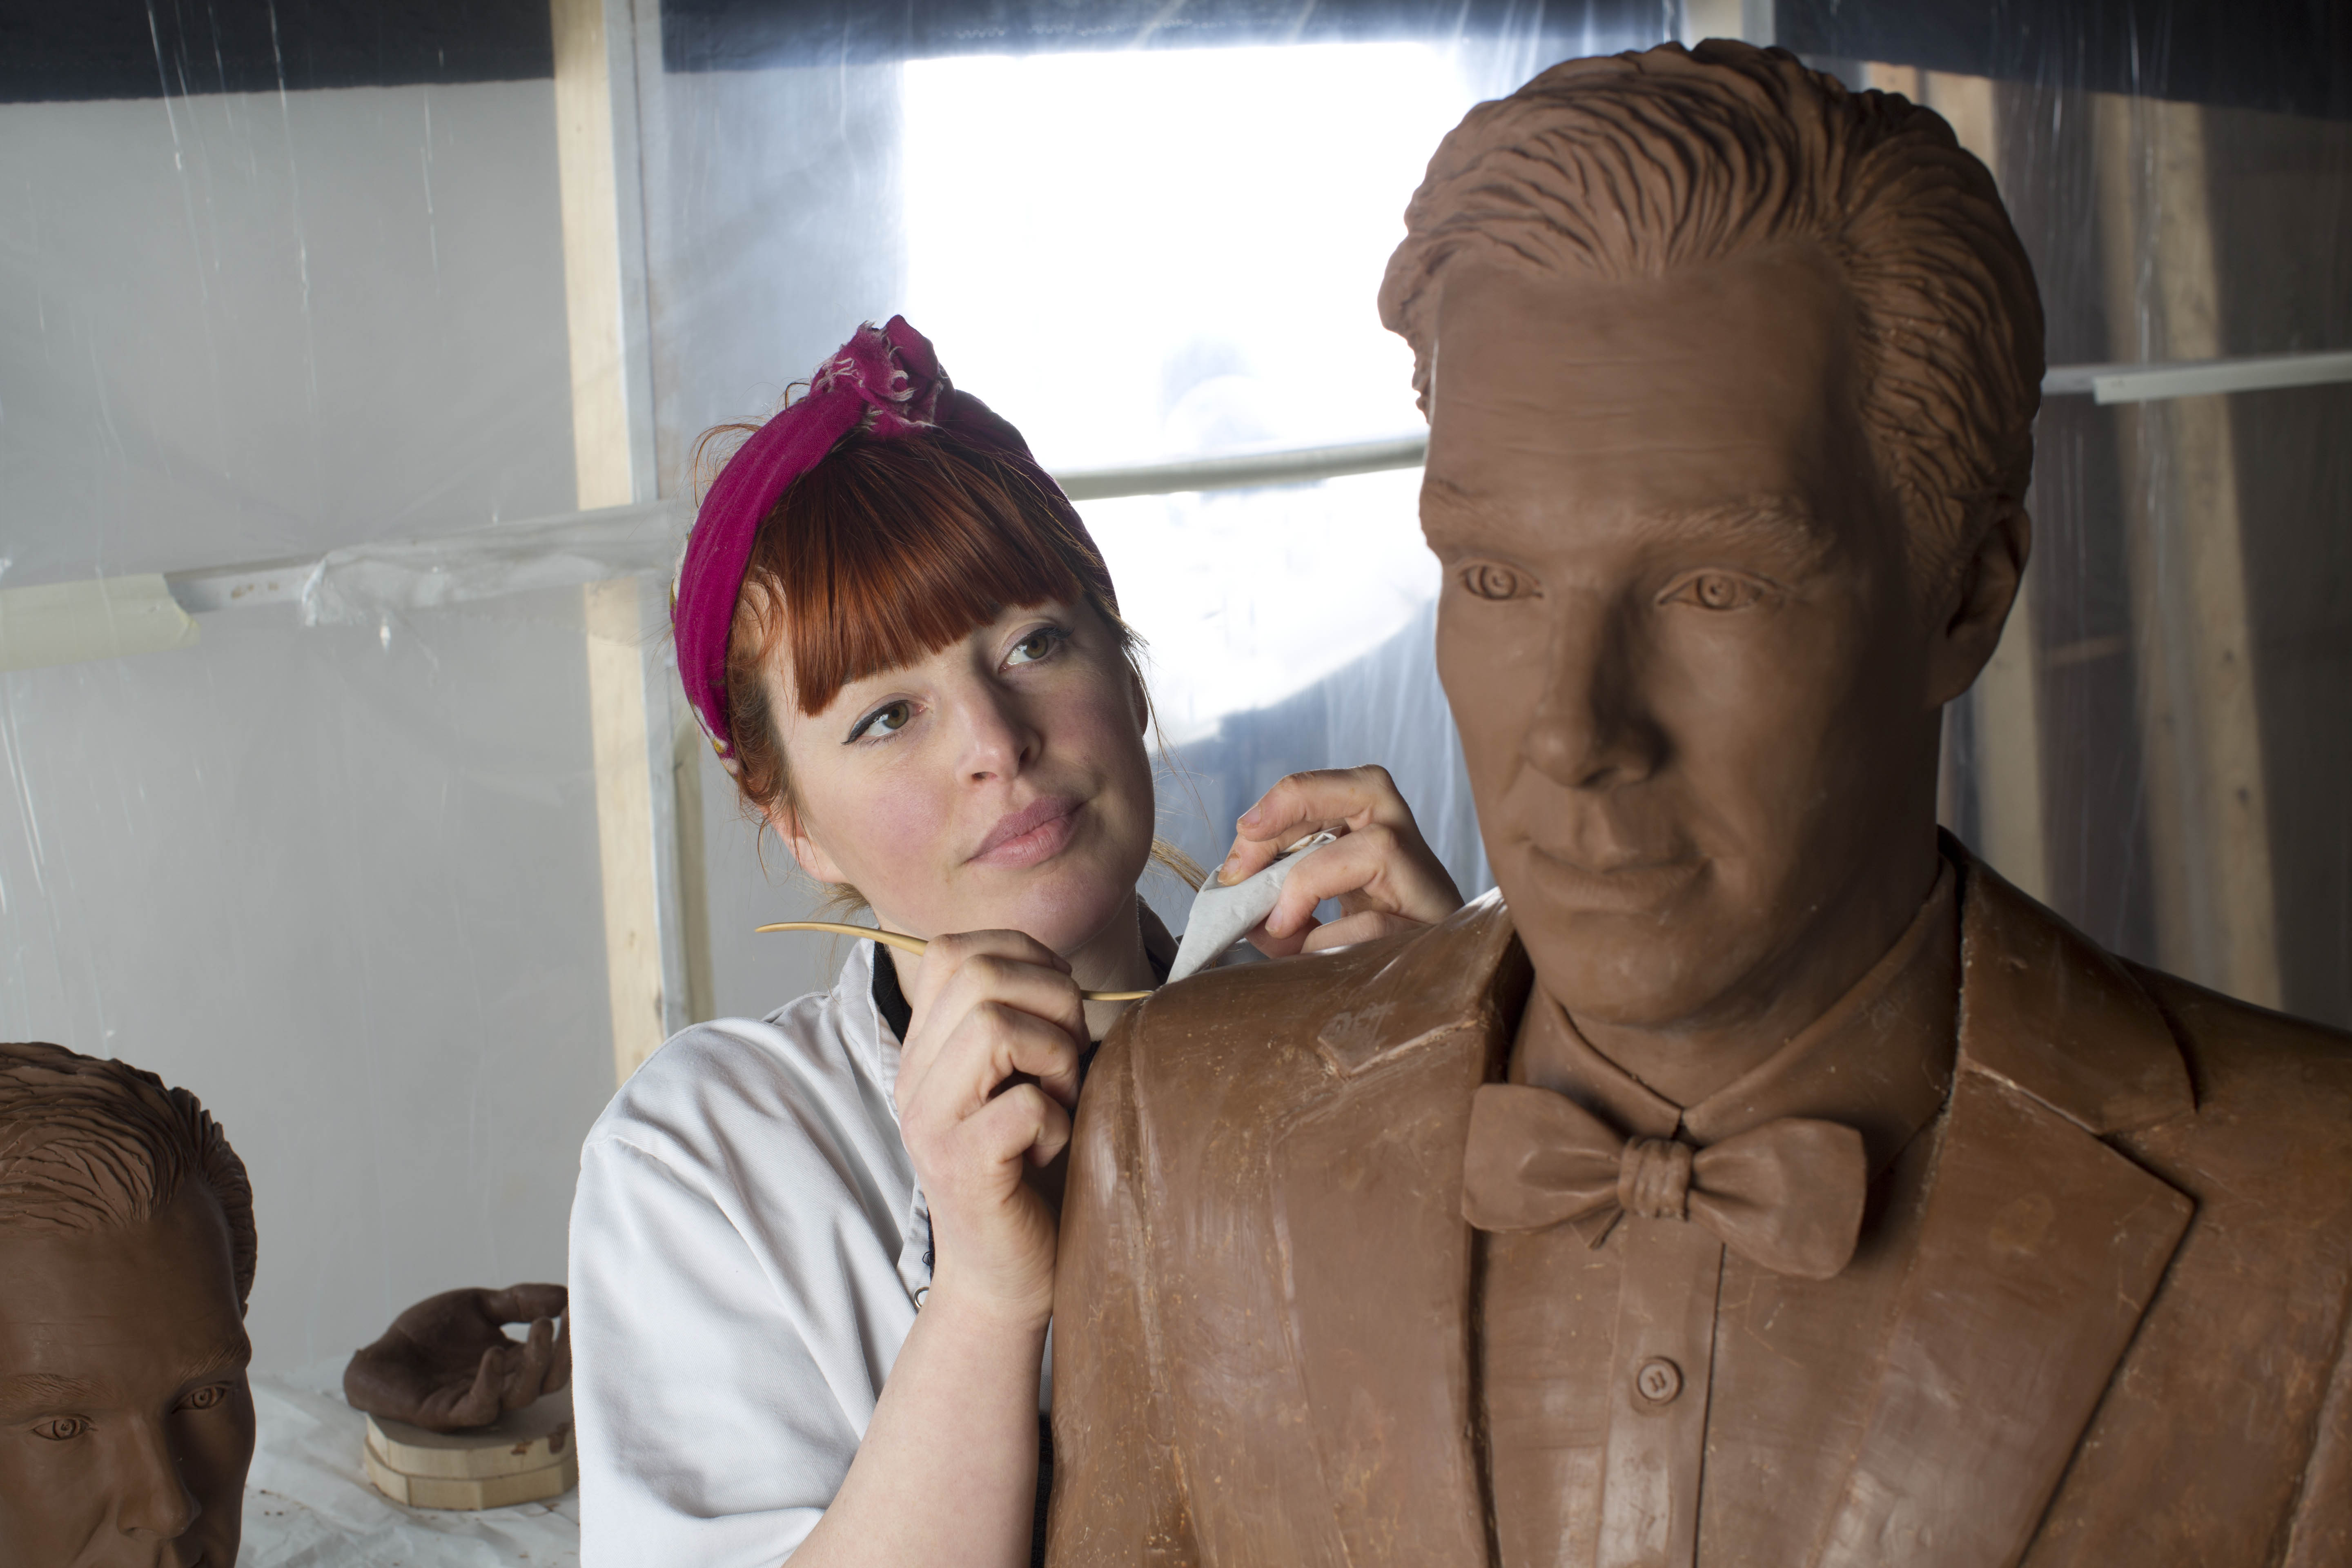 Life-size chocolate Benedict Cumberbatch to promote launch of TV channel 'Drama' on uktvplay.co.uk, Britain - 01 Apr 2015